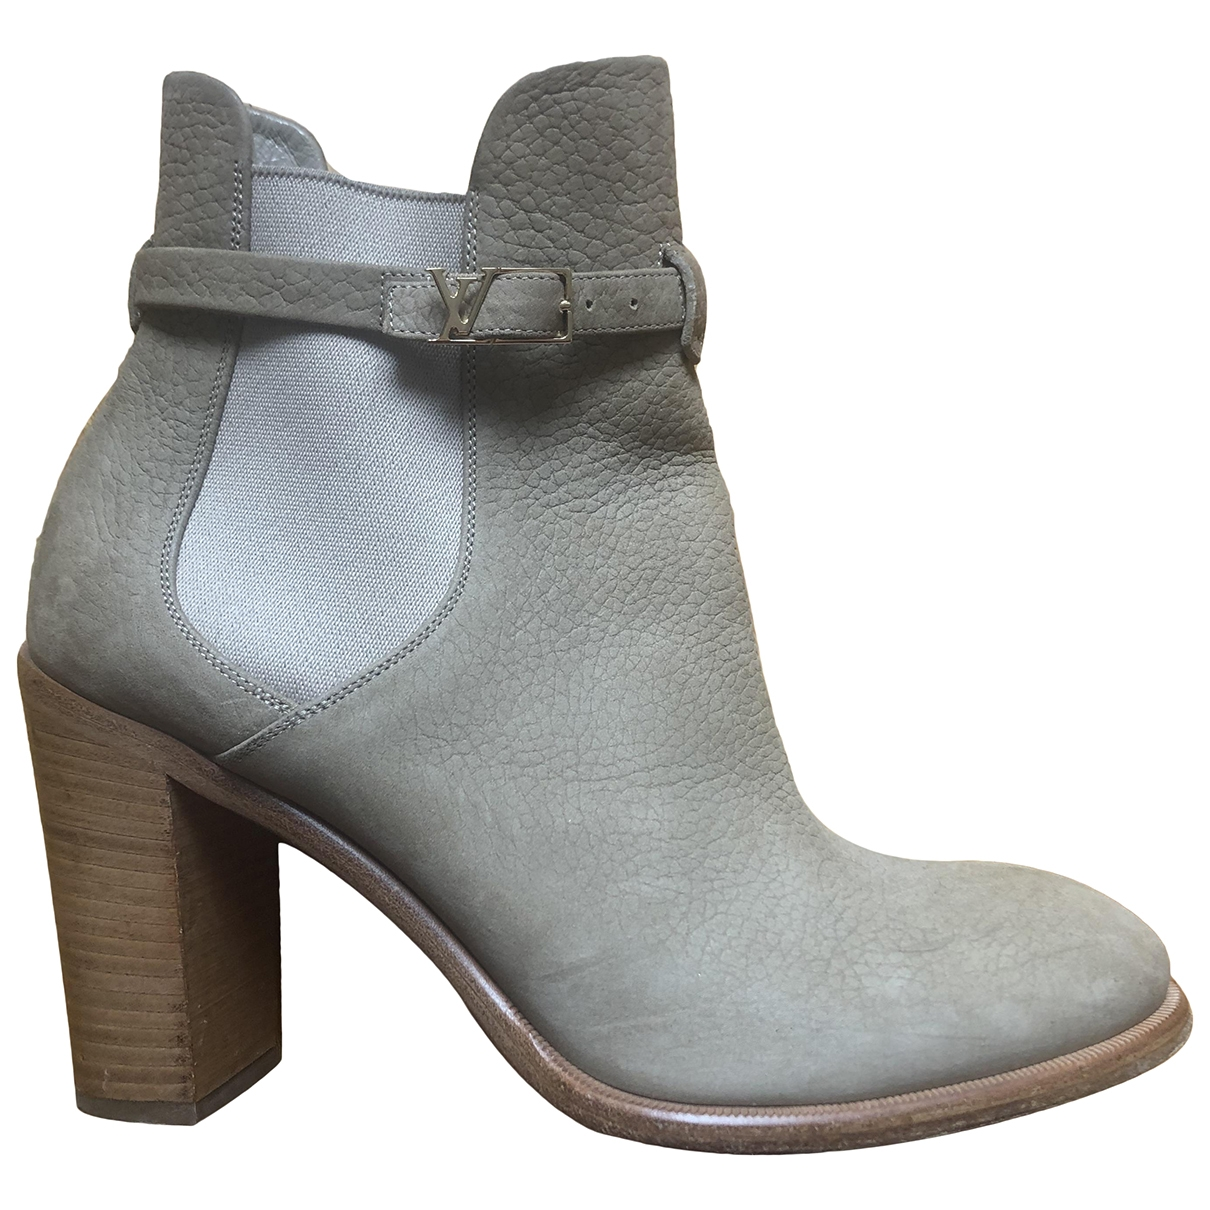 Louis Vuitton \N Beige Leather Ankle boots for Women 40 EU